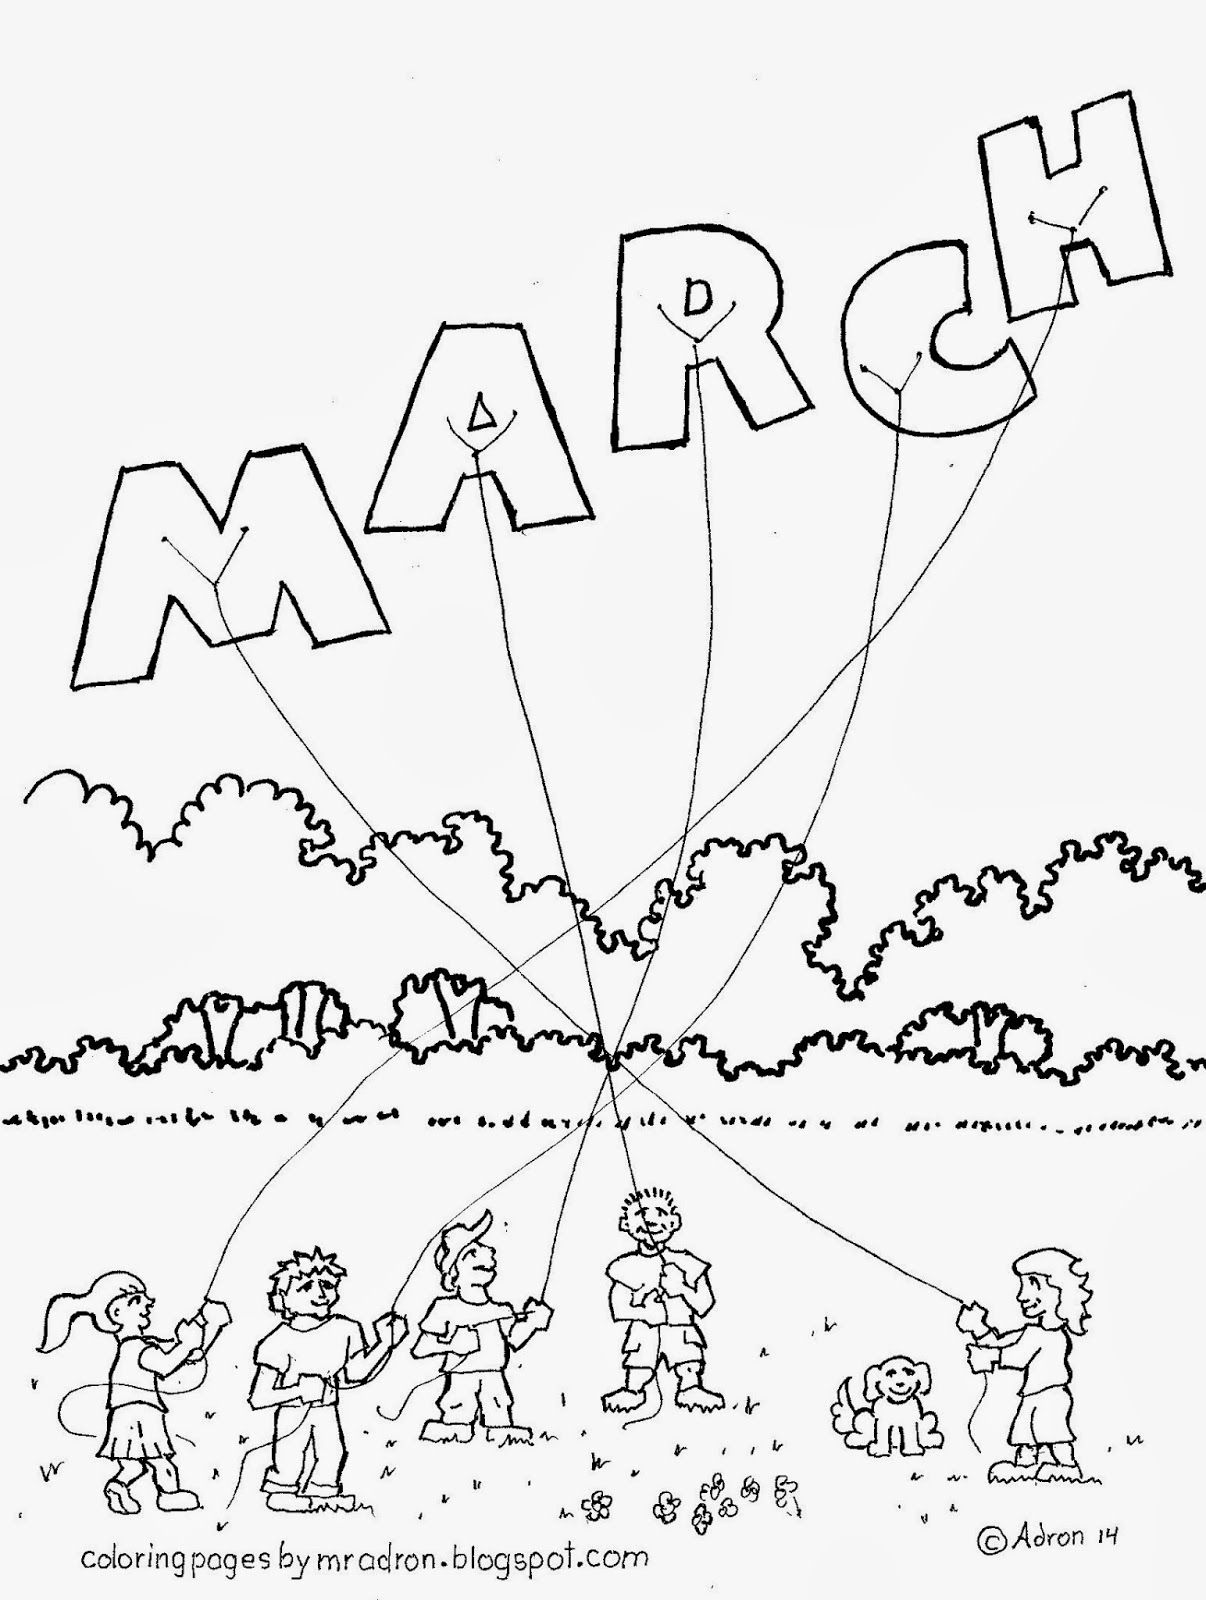 Month Of March Free Coloring Page For Kids Free Decorazioni